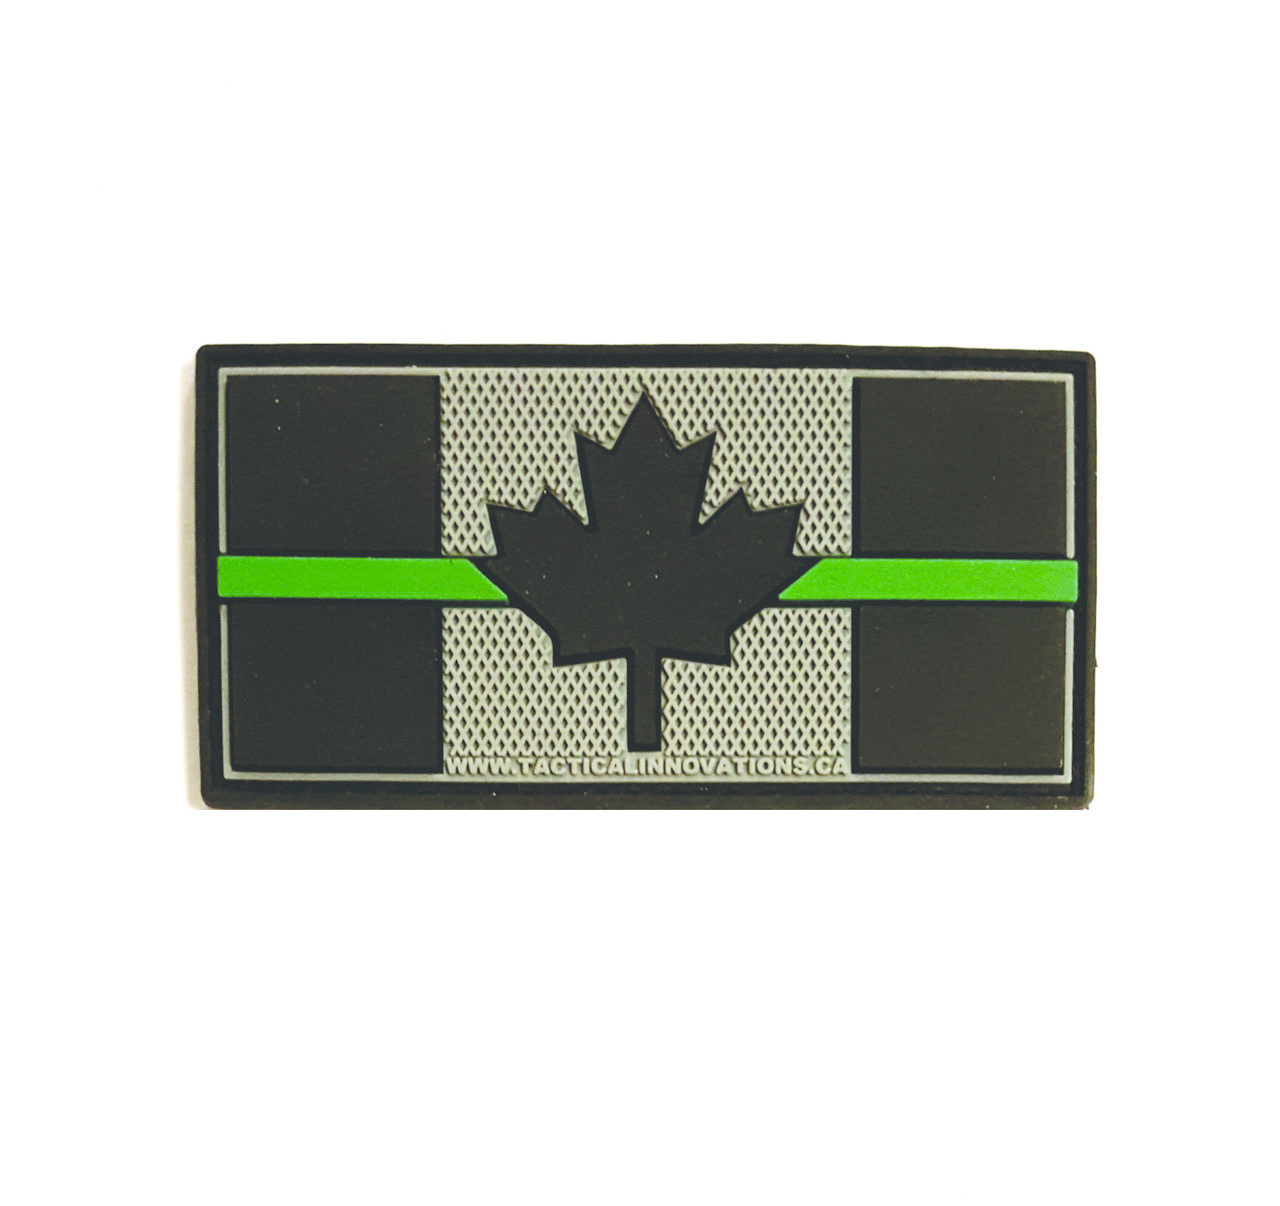 Tactical Innovations Canada PVC Patch - Canadian Thin Green Line 1.5x3